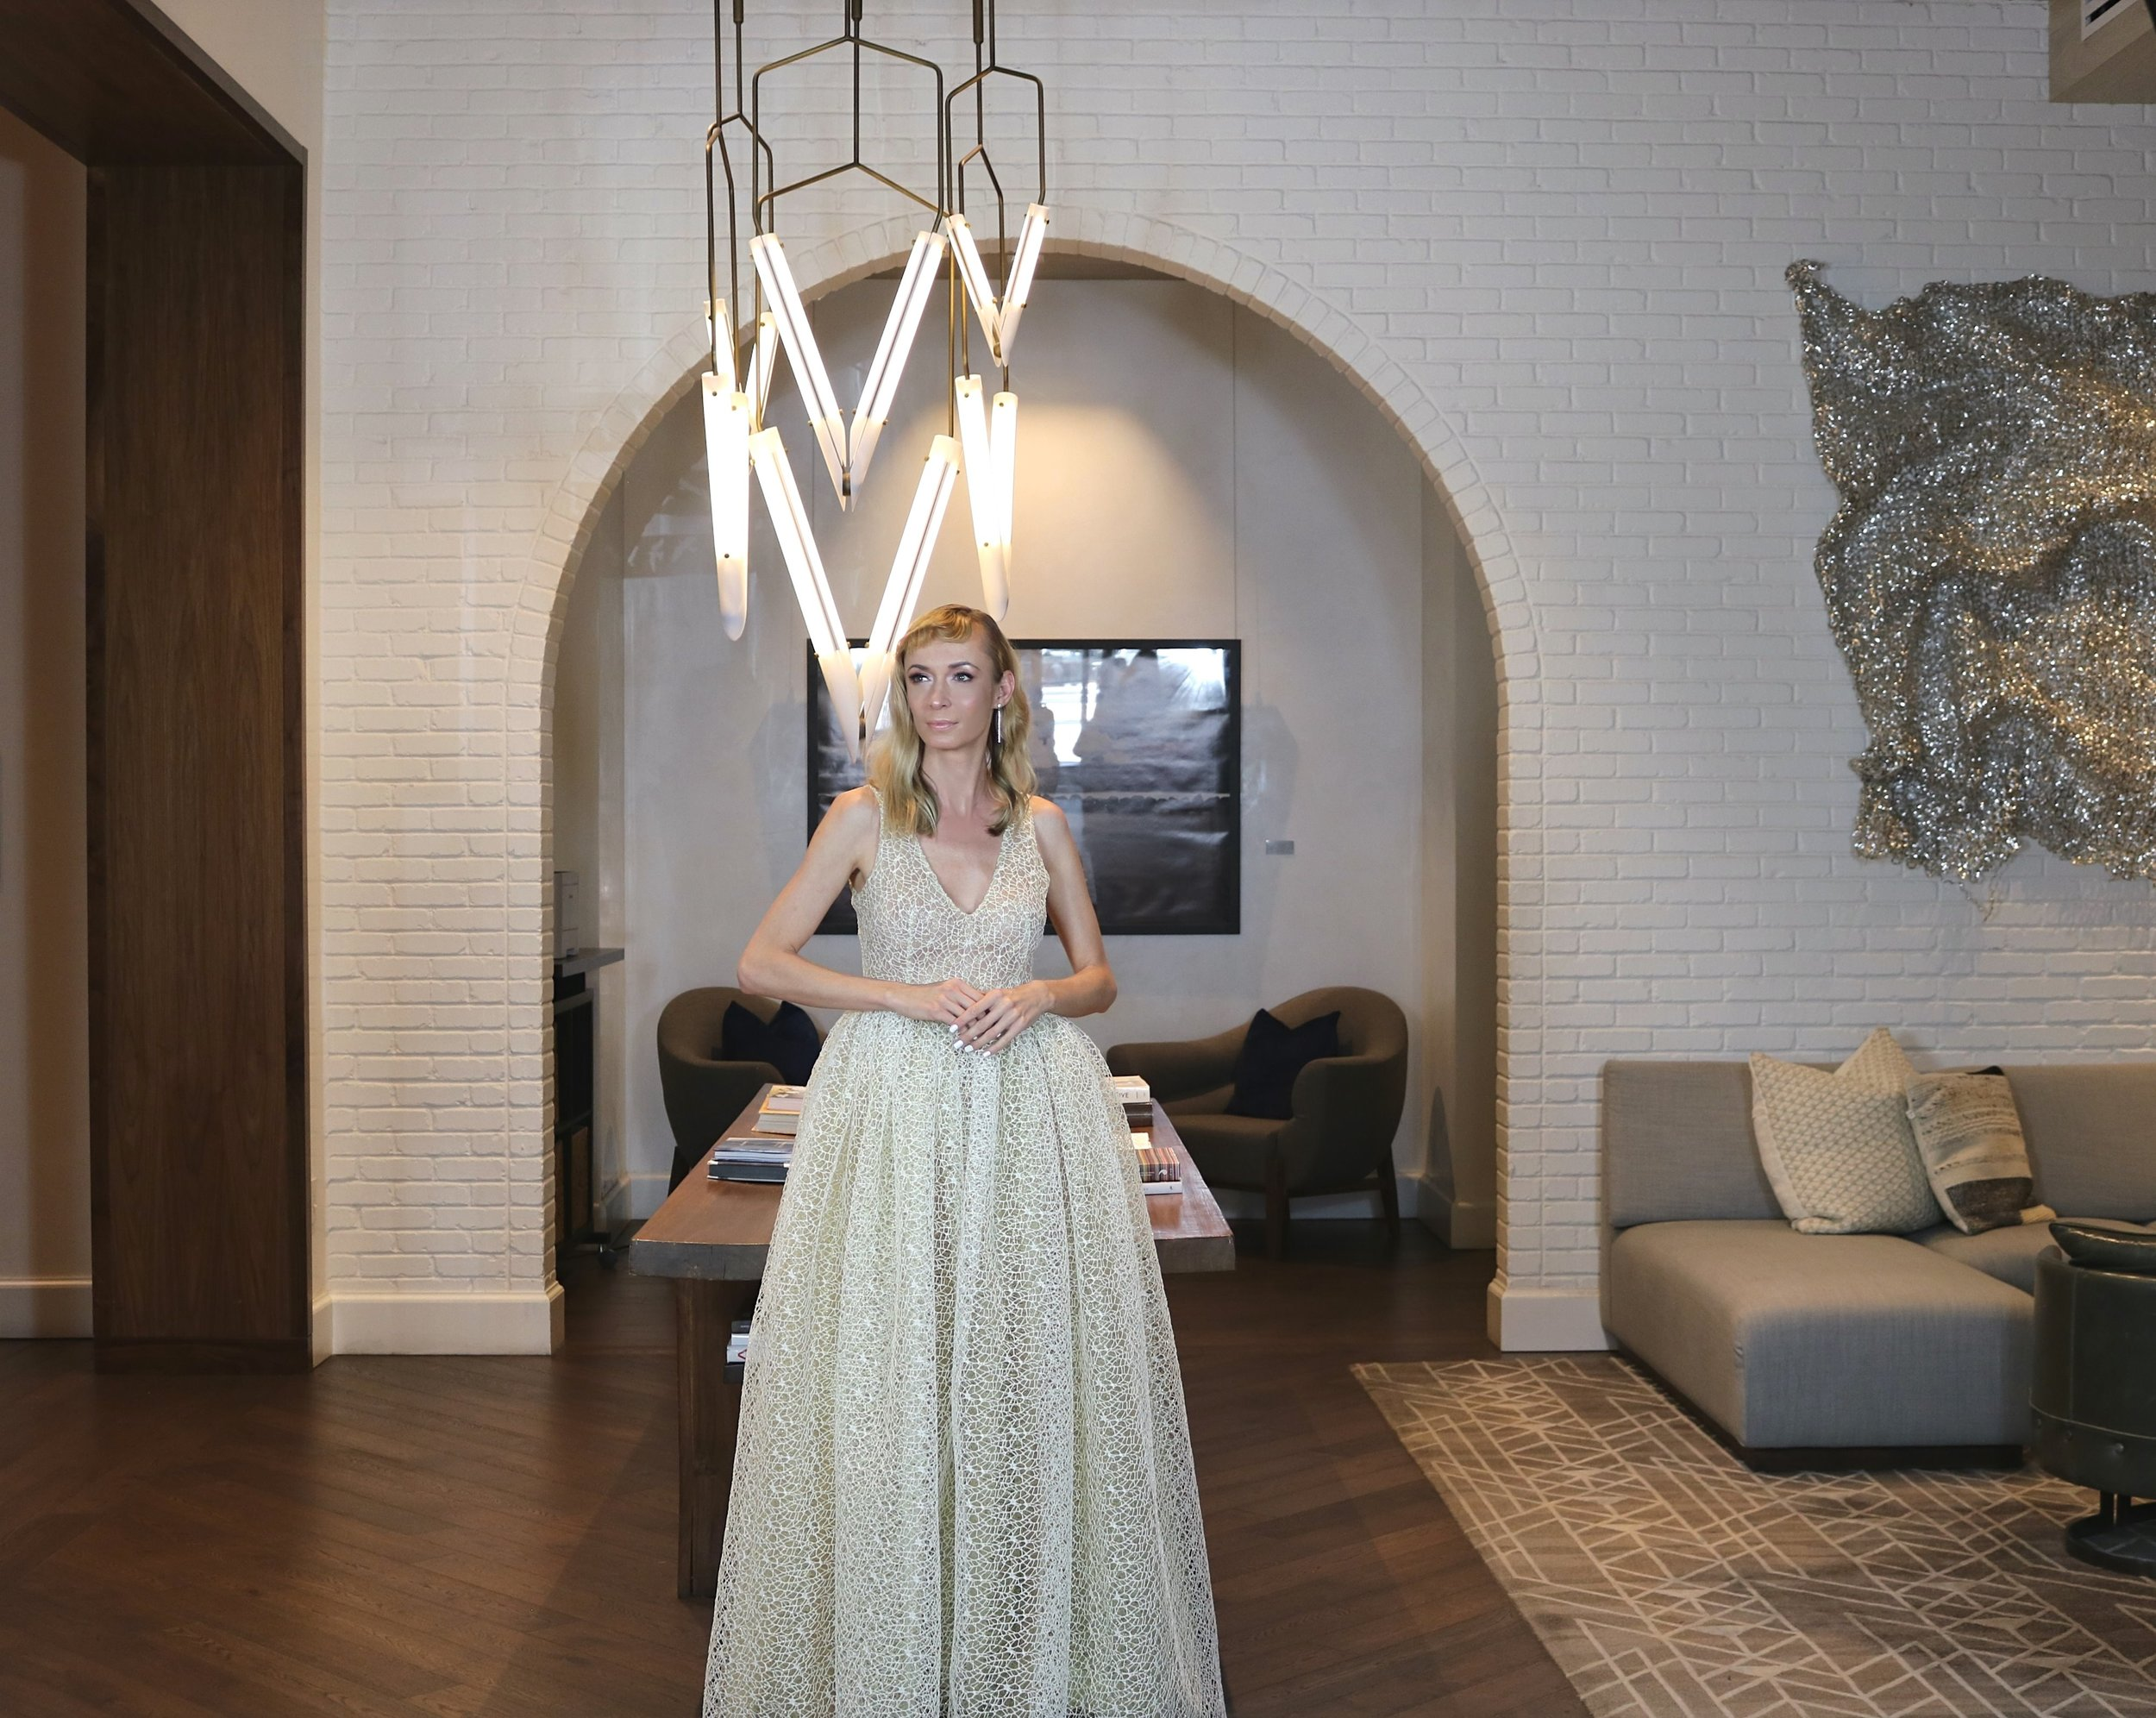 - Get The Look Now at Allison NicoleGown: Allison NicoleAllisonnicoledesigns.com